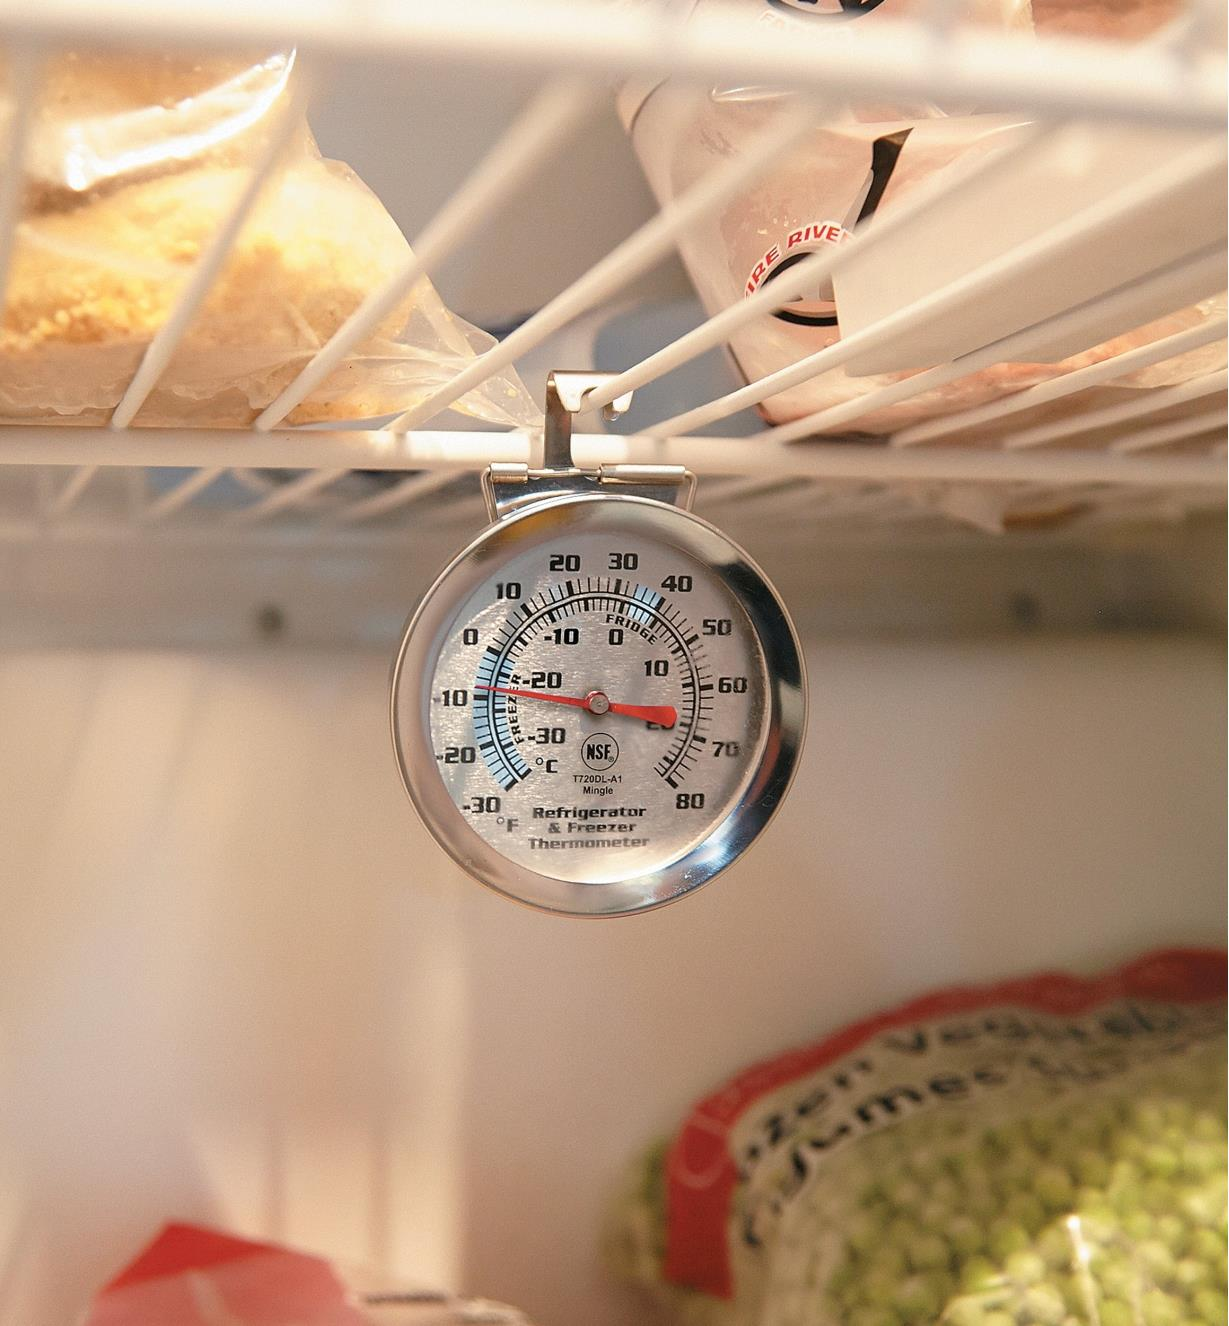 Refrigerator/Freezer Thermometer hanging by its hook from a wire shelf in a freezer